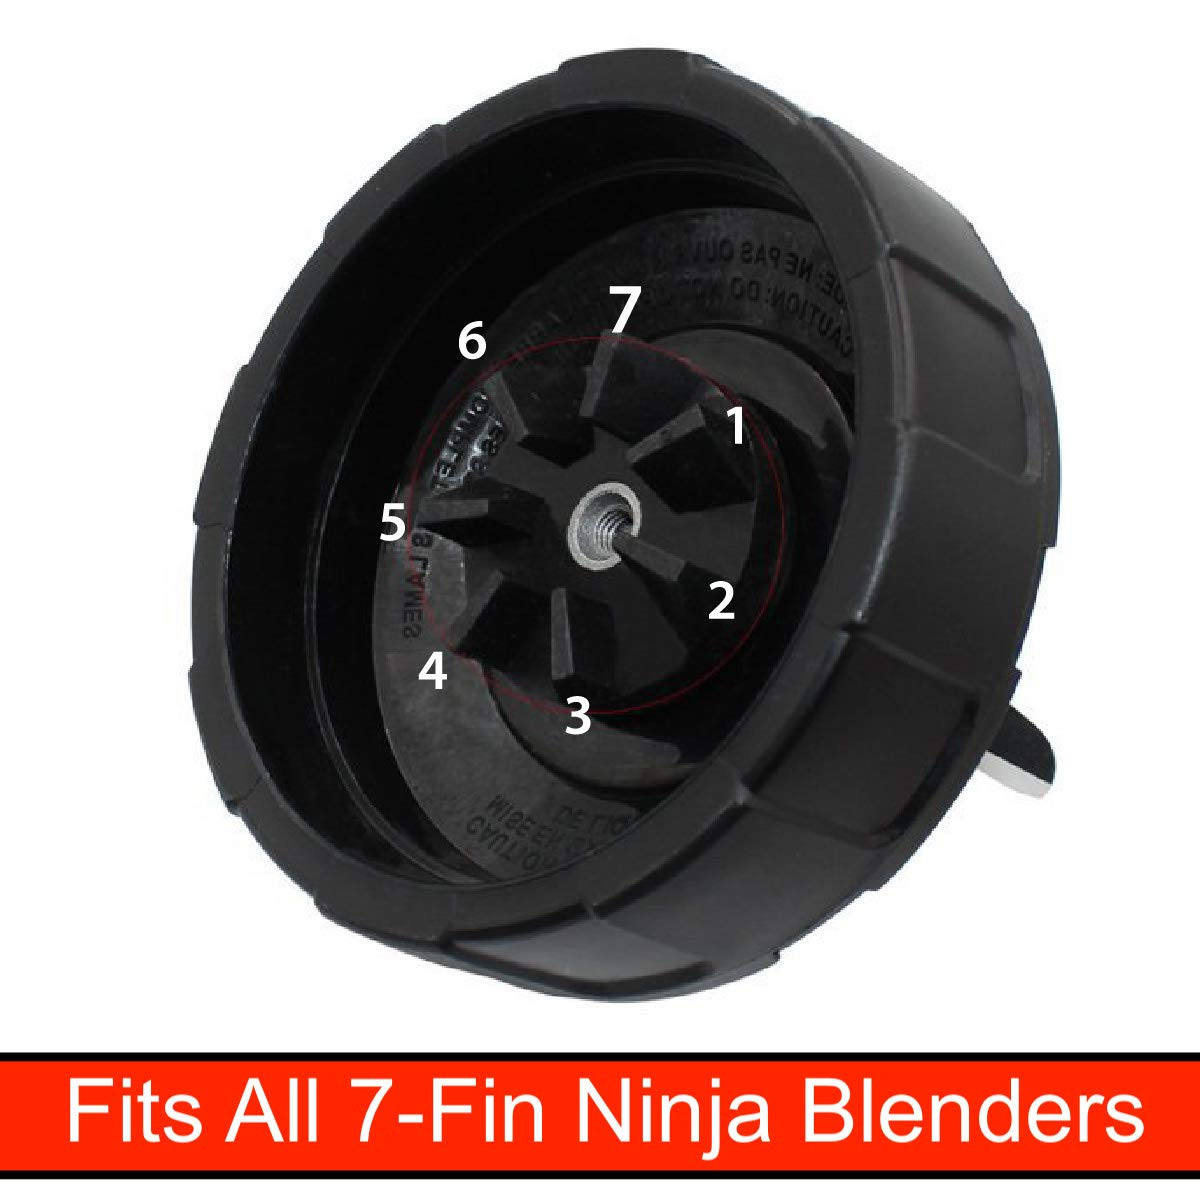 32oz Cup Replacement for Nutri Ninja Blenders 1, 32oz Cup Large Blender Cups Compatible with Auto IQ and Duo Blenders